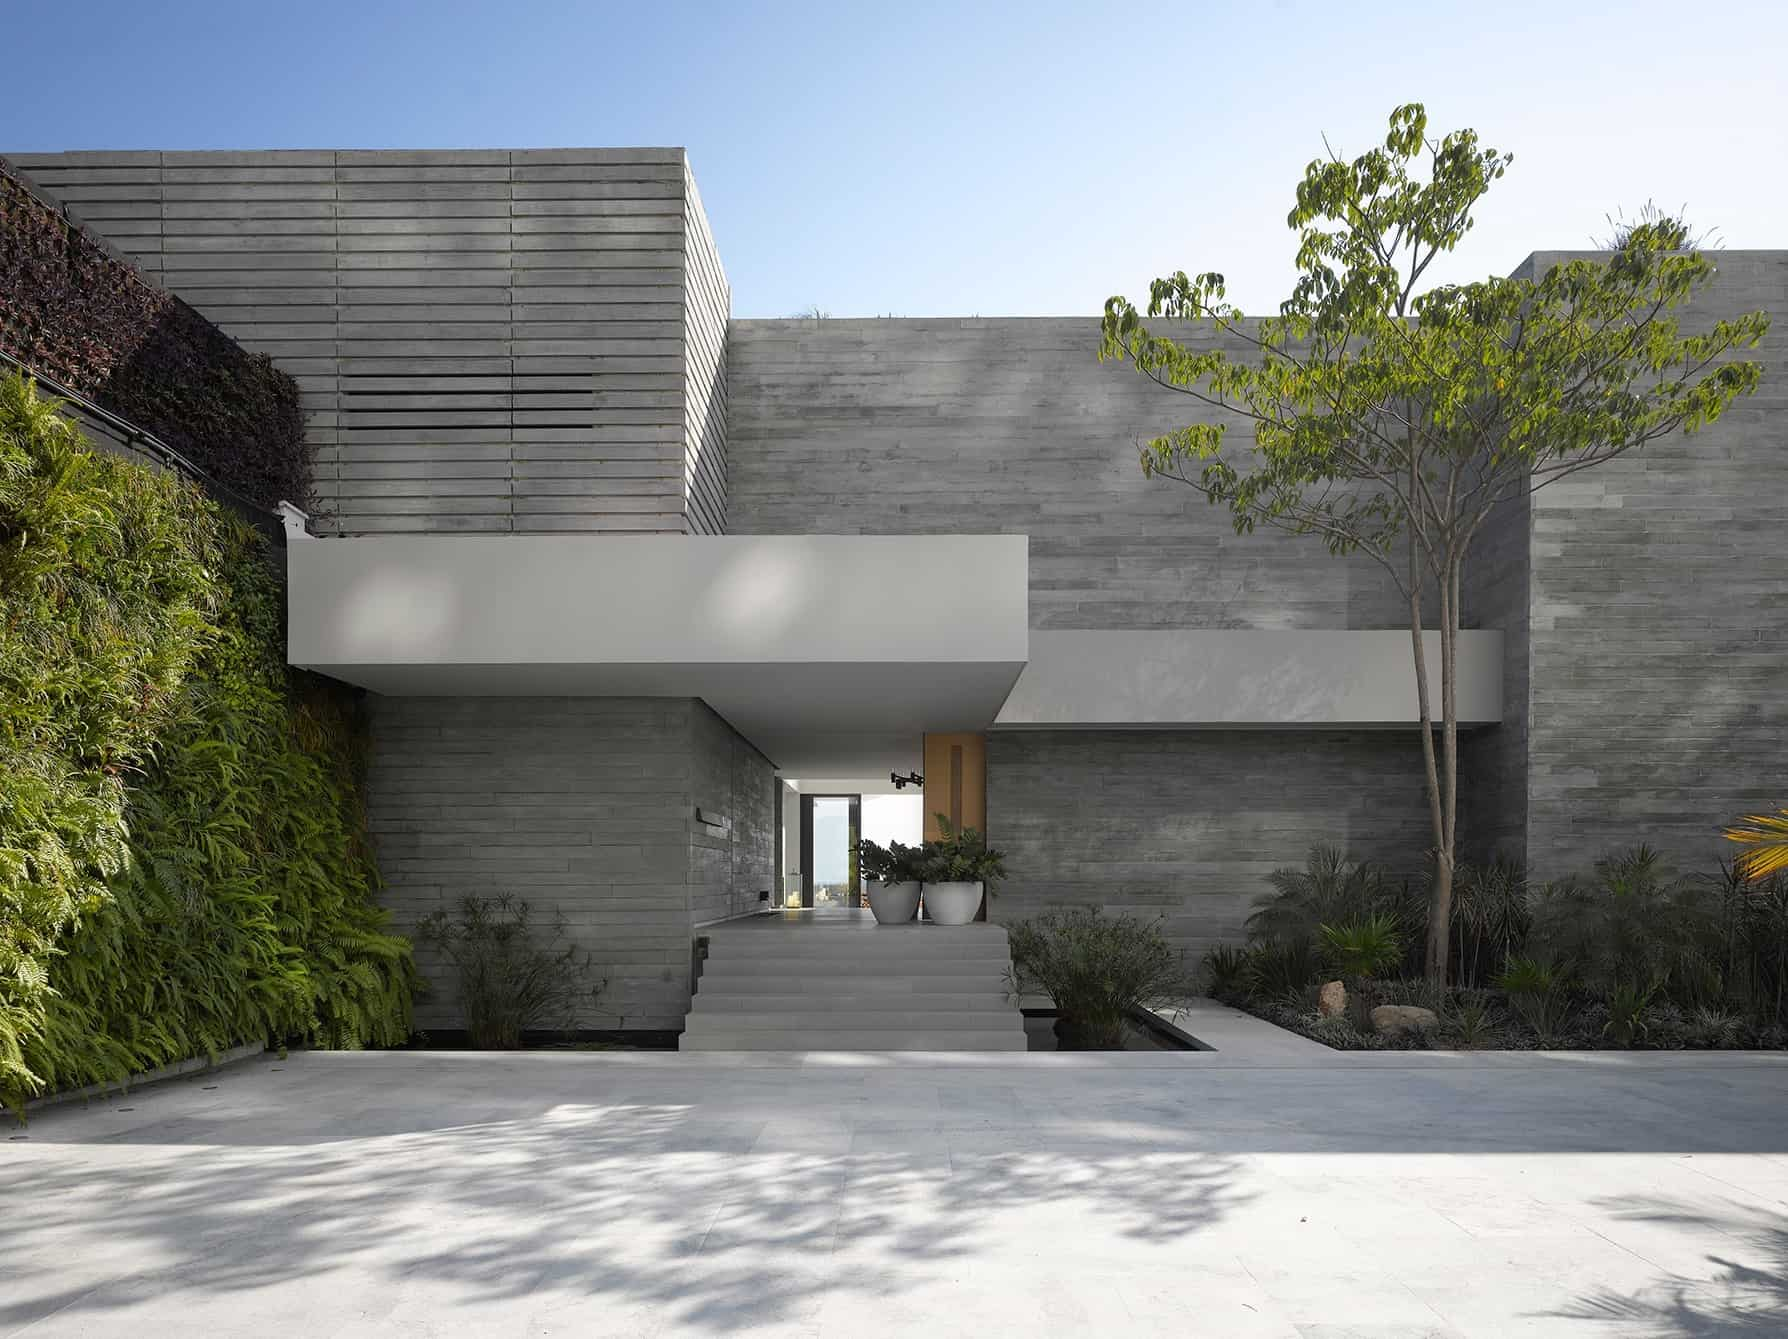 Modern-House-Architecture-Ezequiel Farca-01-1 Kindesign